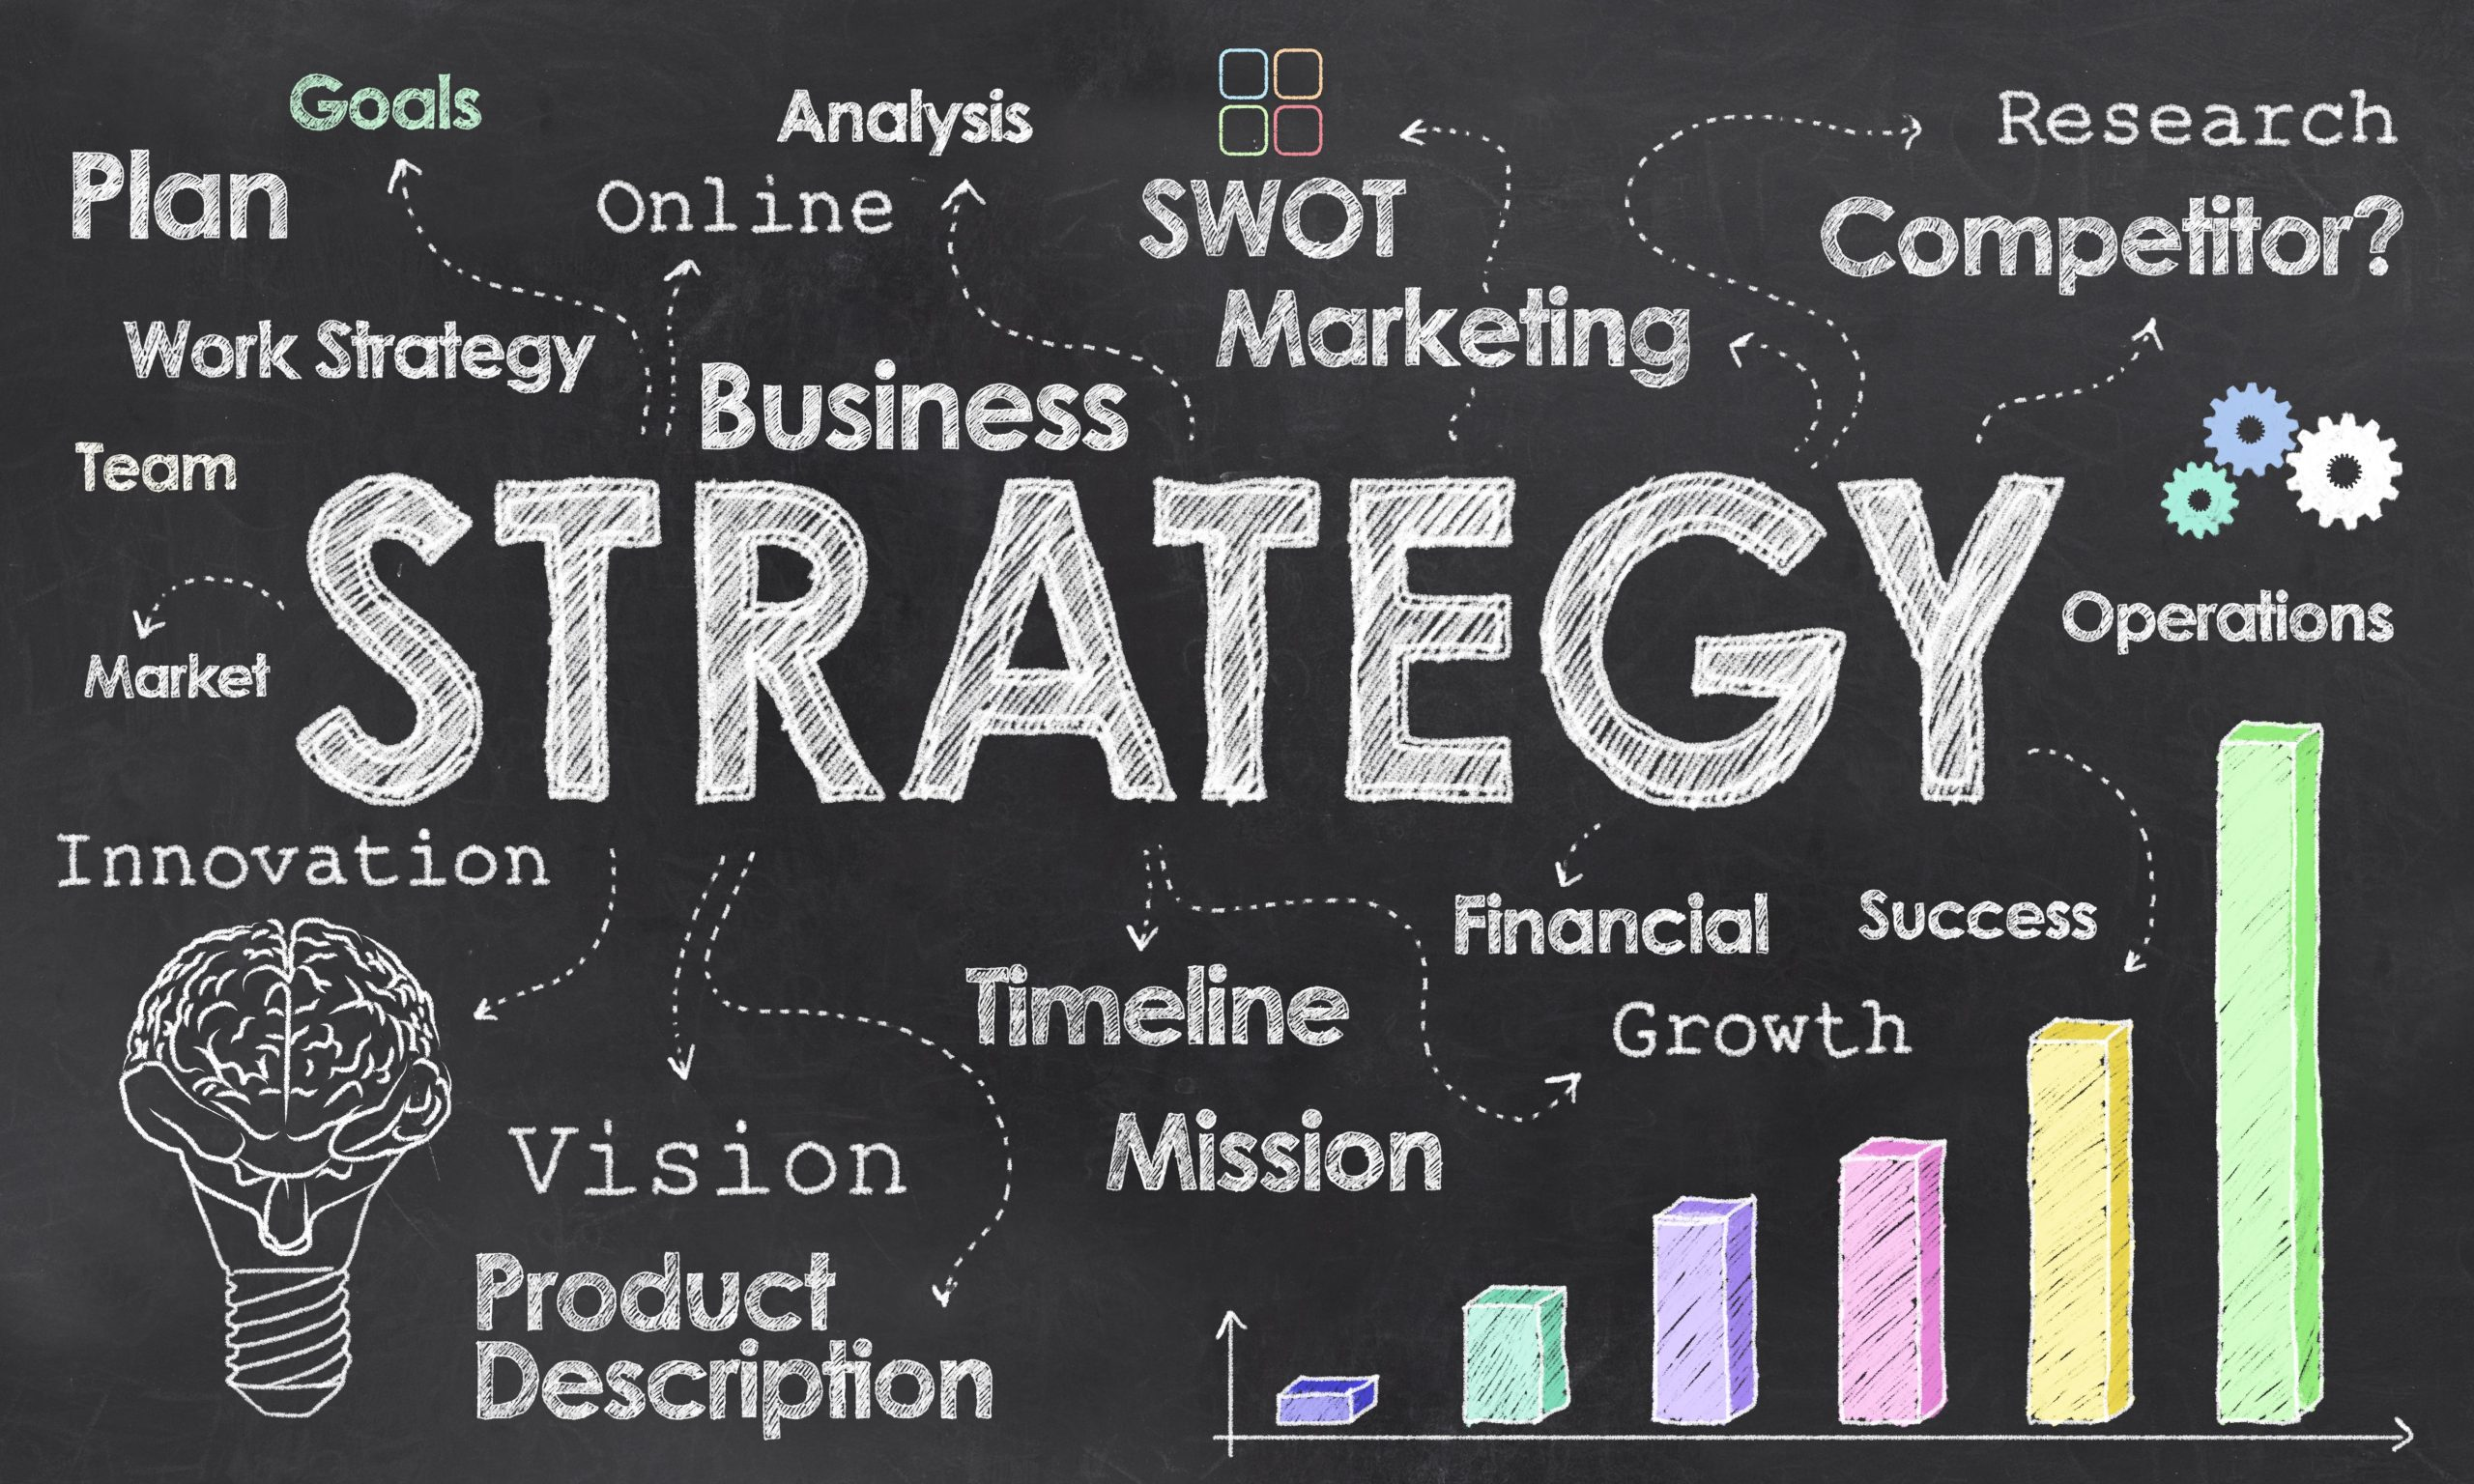 Functional Tactics Compare To Business Strategies